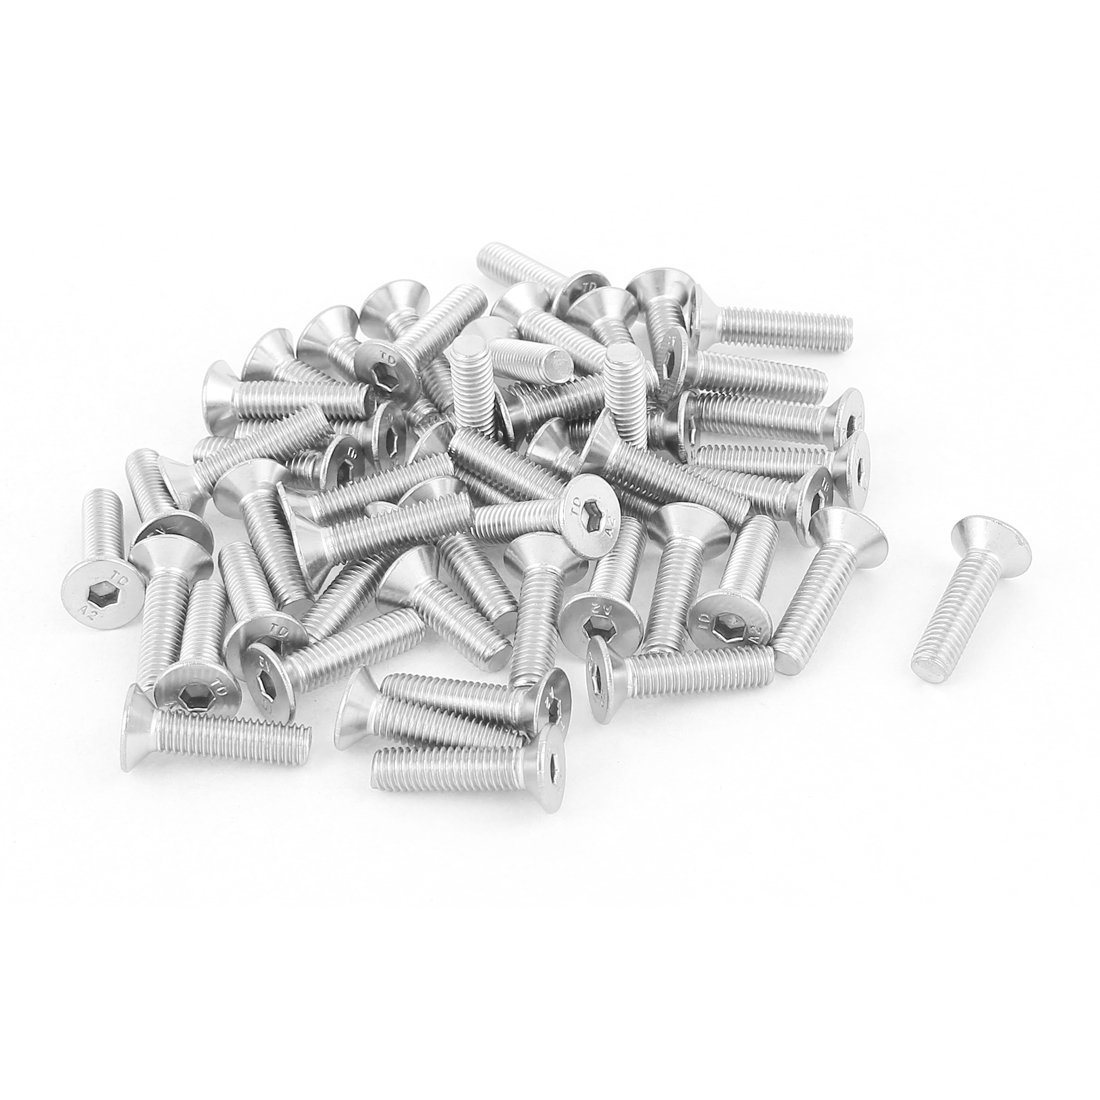 M5x20mm Stainless Steel Hex Socket Flat Head Countersunk Bolts Screw 50Pcs